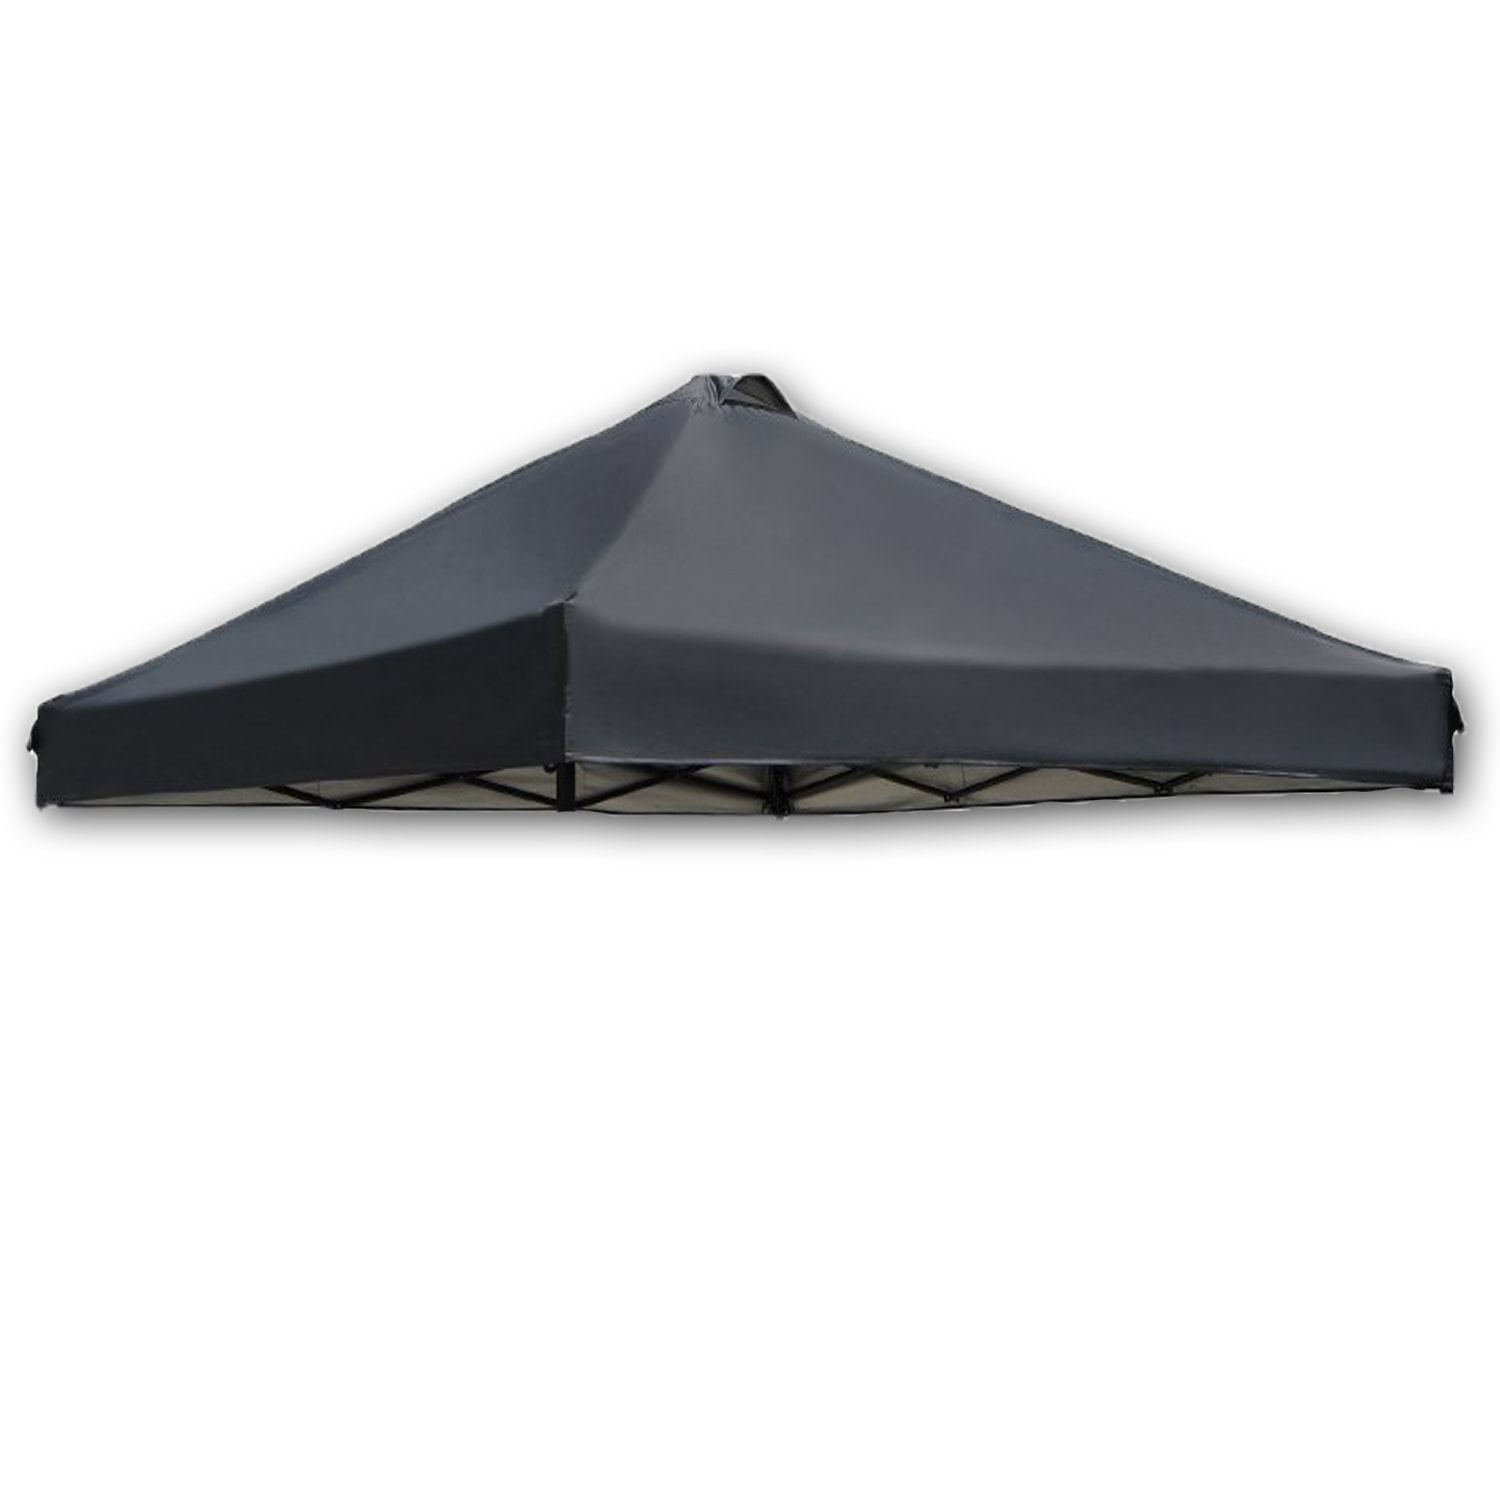 Canopy Top for Ozark Trail ABBA Coleman First Up 10 x 10 Tent Replacement  Black